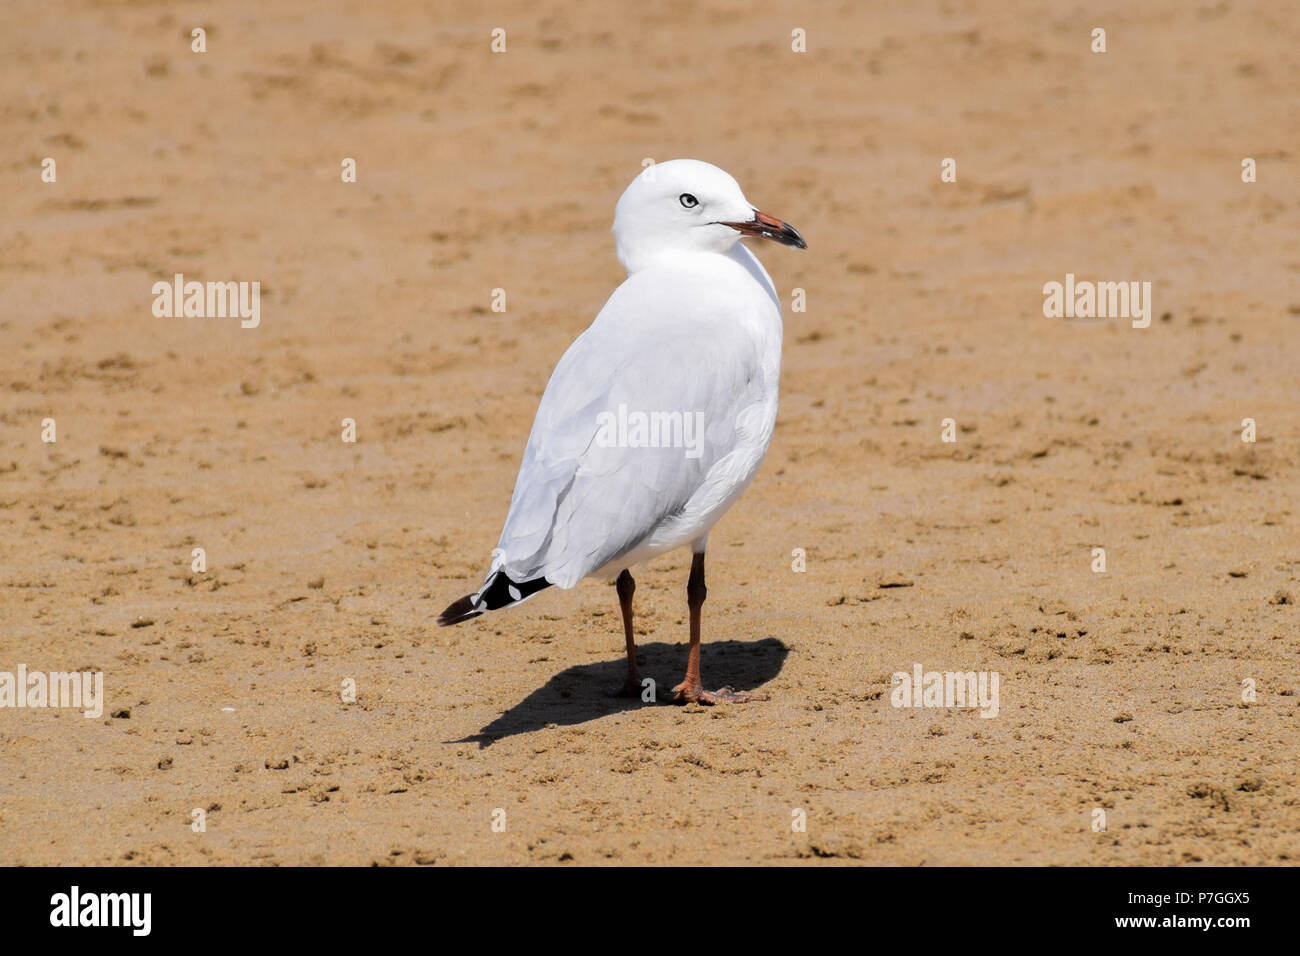 Seagull on the beach - Stock Image